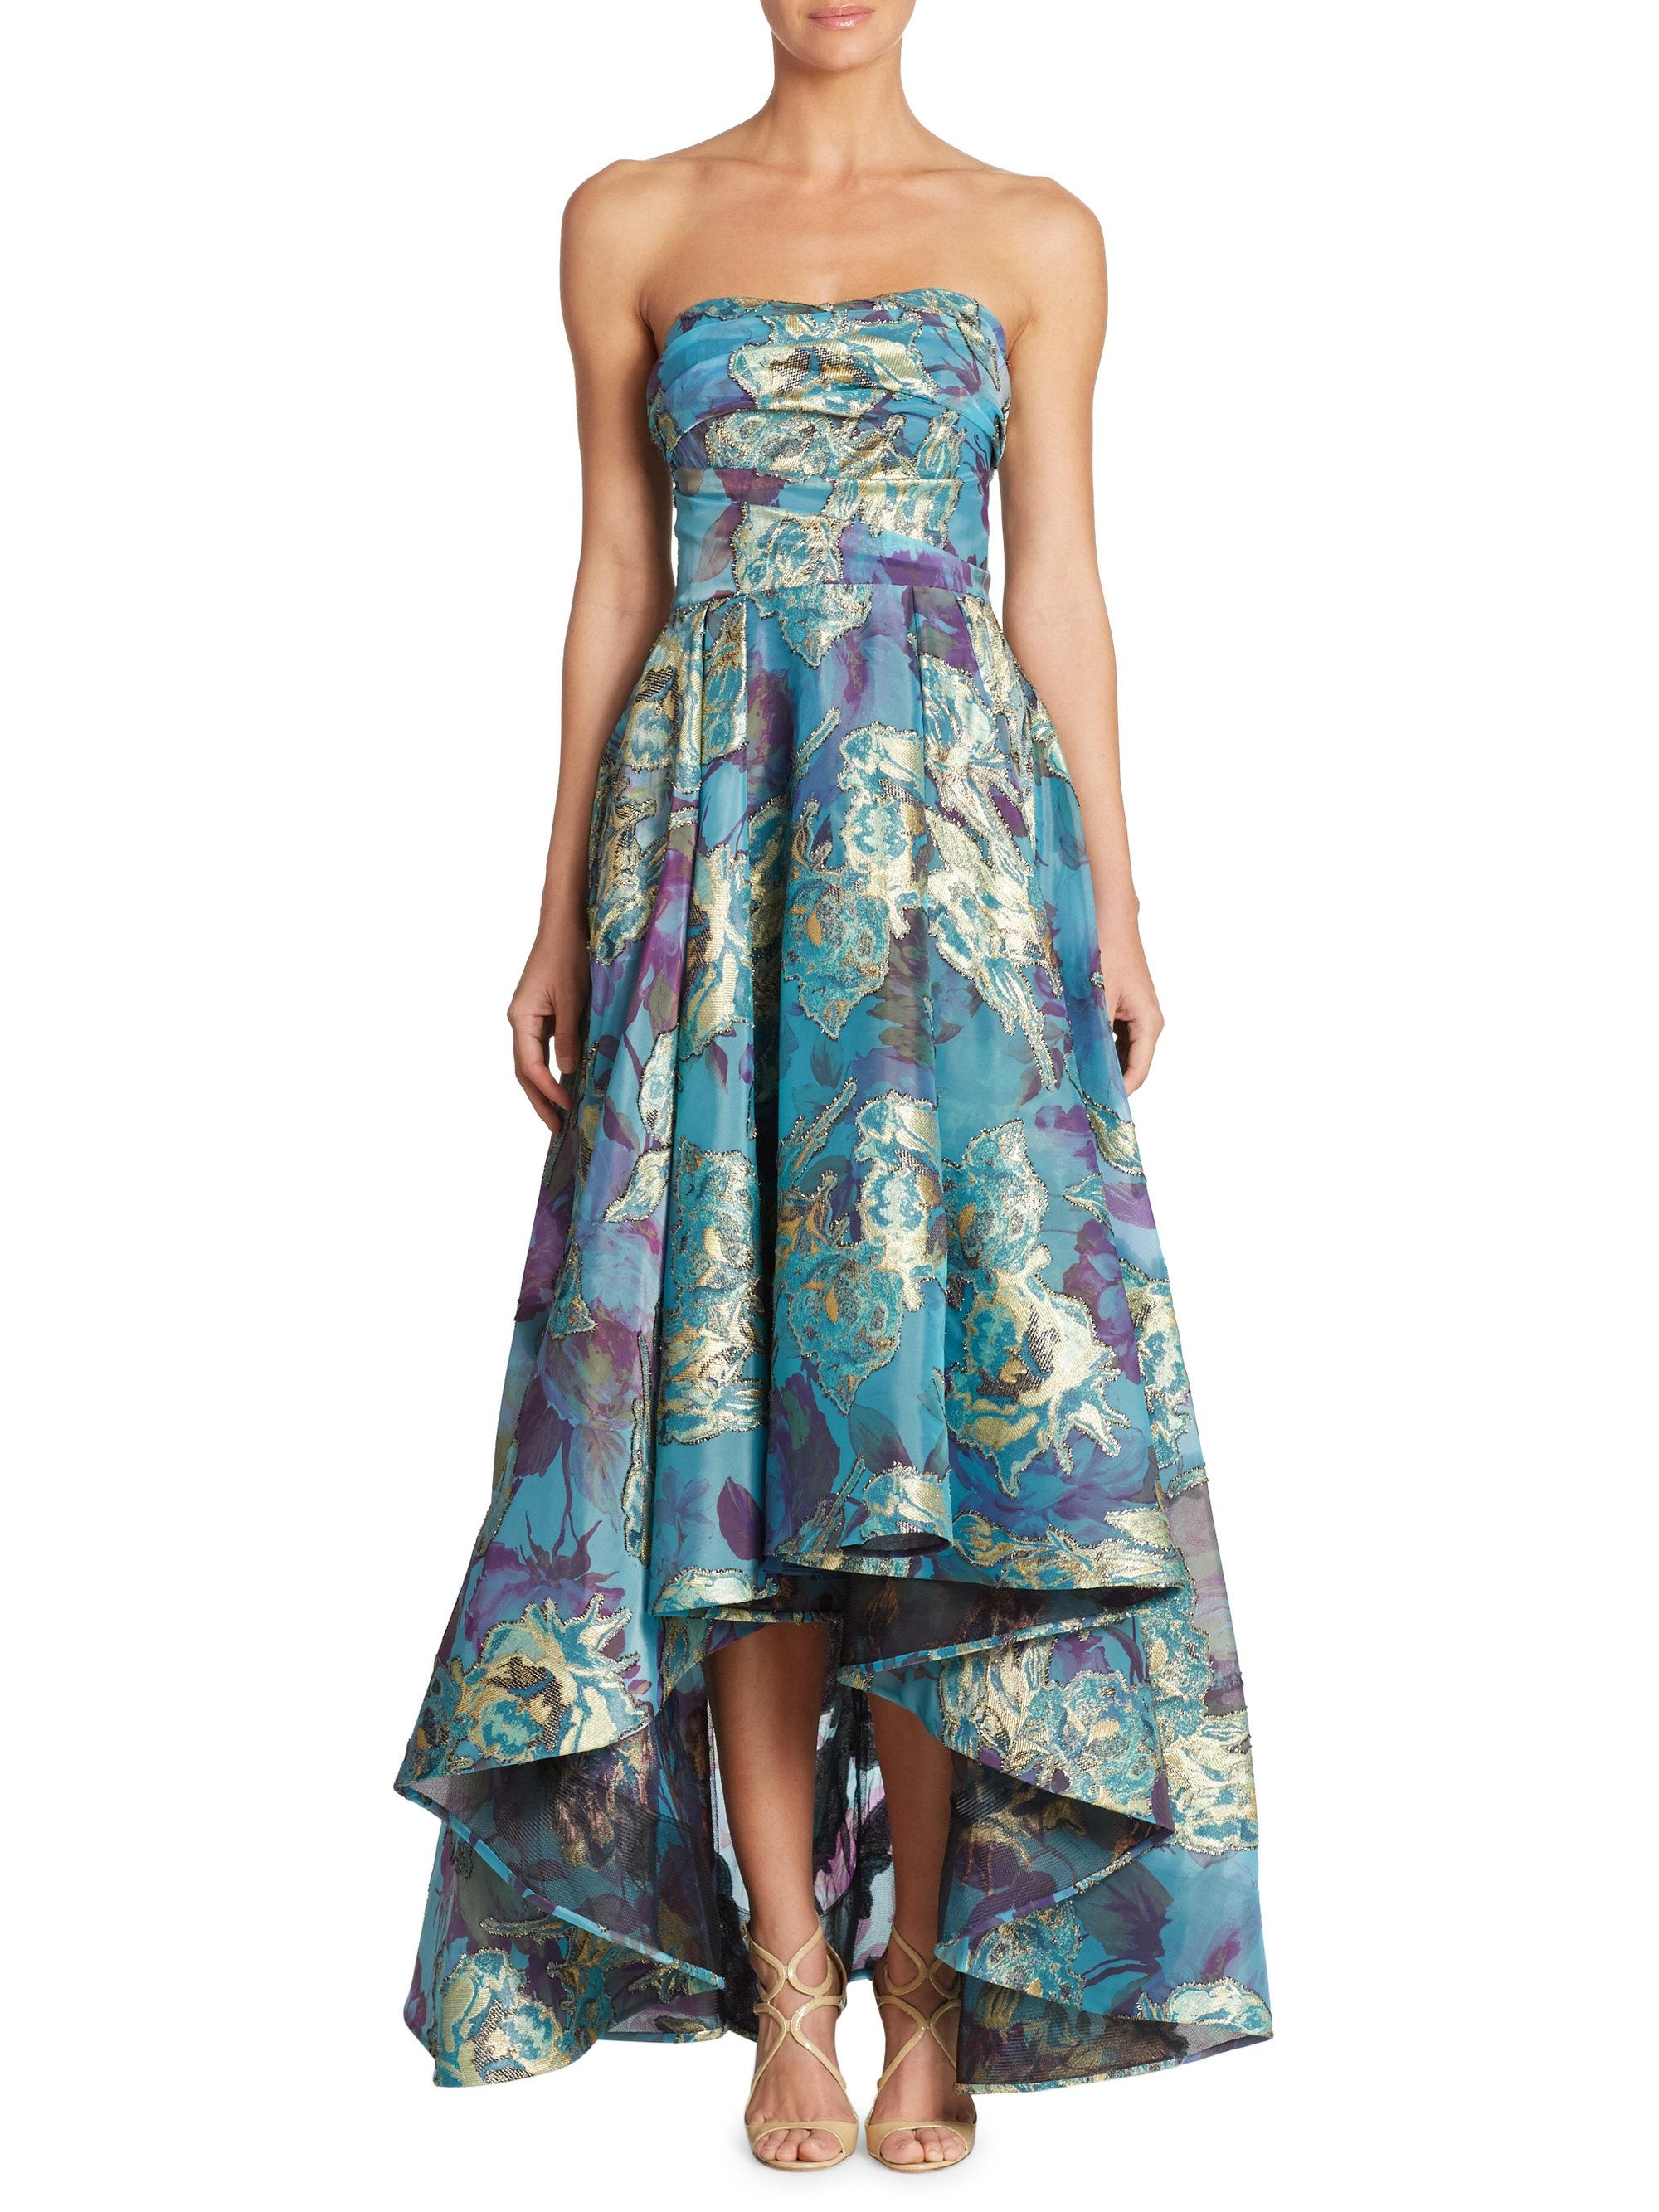 Lyst - Notte By Marchesa Strapless Fil Coupe Hi-lo Gown in Blue